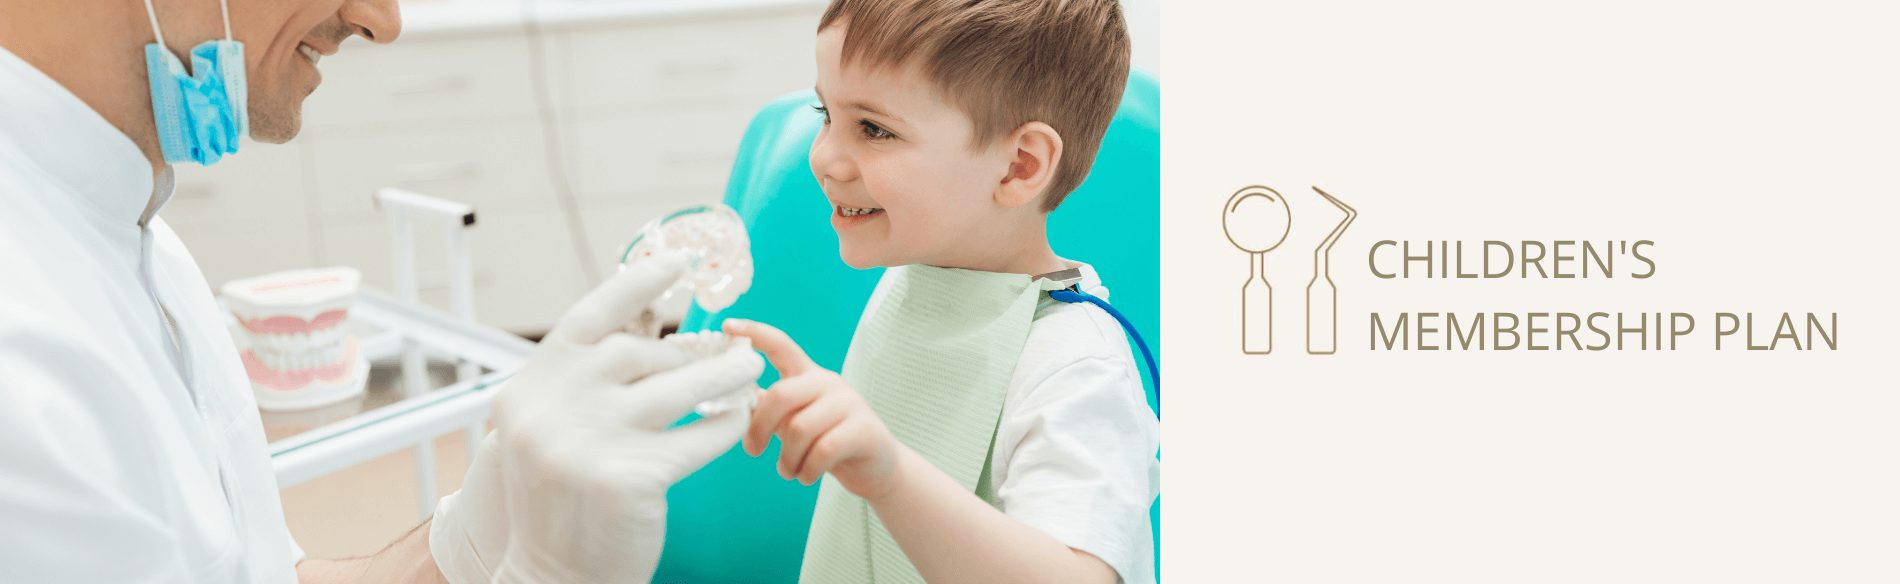 Taking care of children's oral health